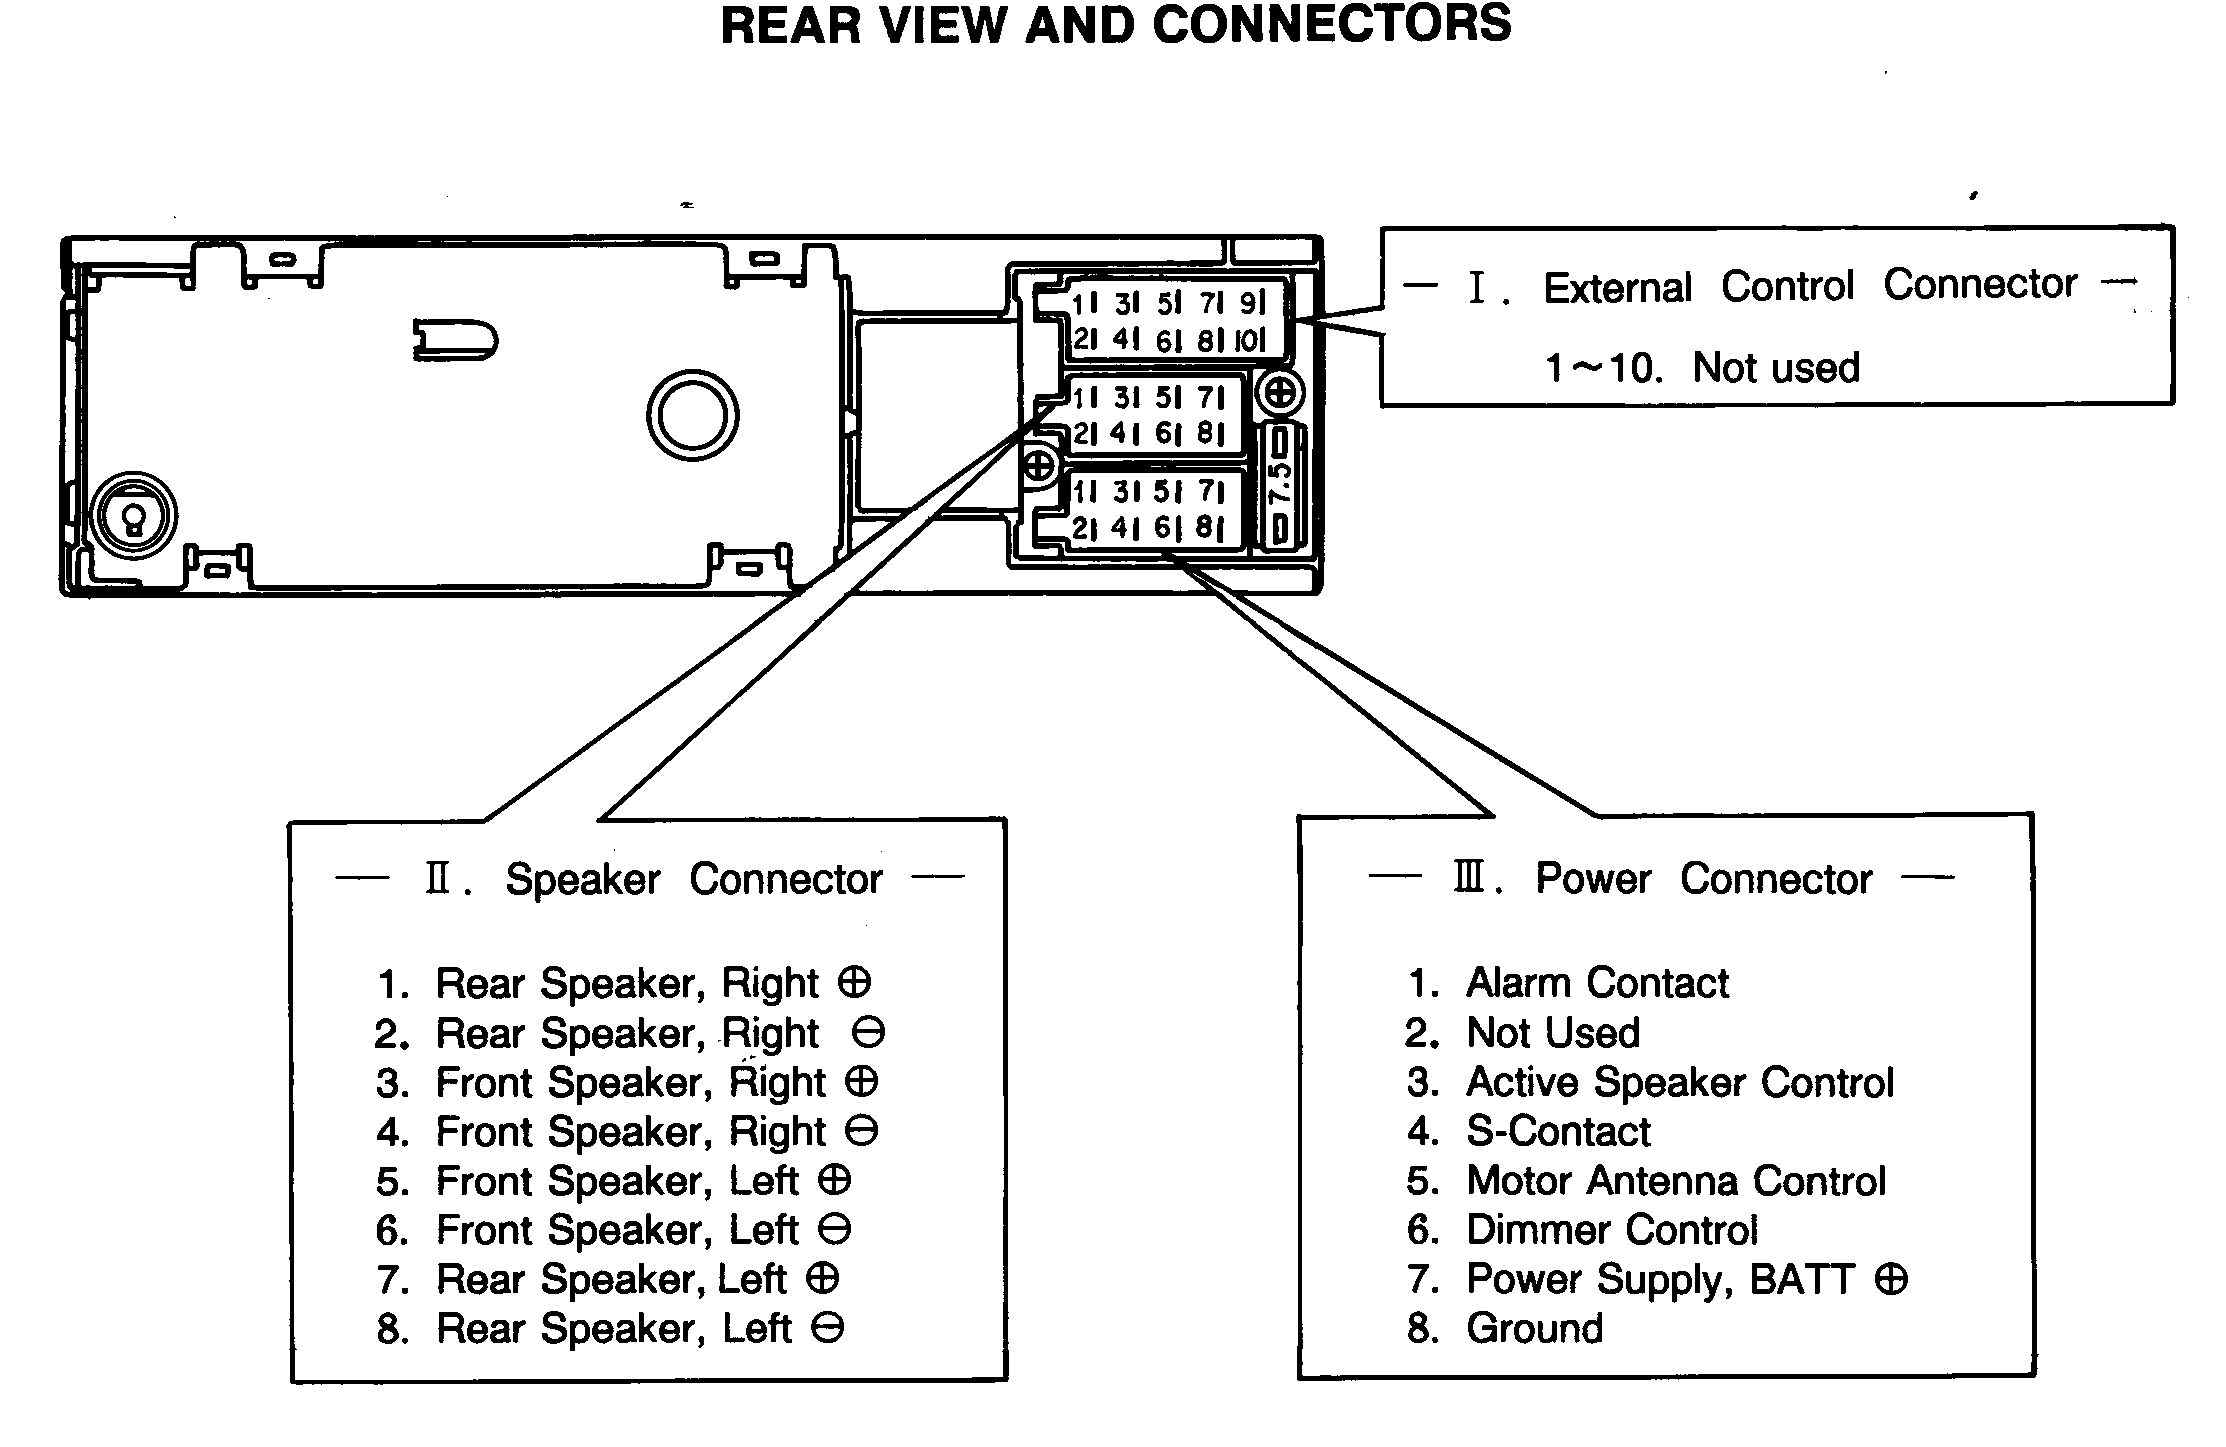 vw stereo wiring diagram vw wiring diagrams wireharnessvw121401 vw stereo wiring diagram wireharnessvw121401